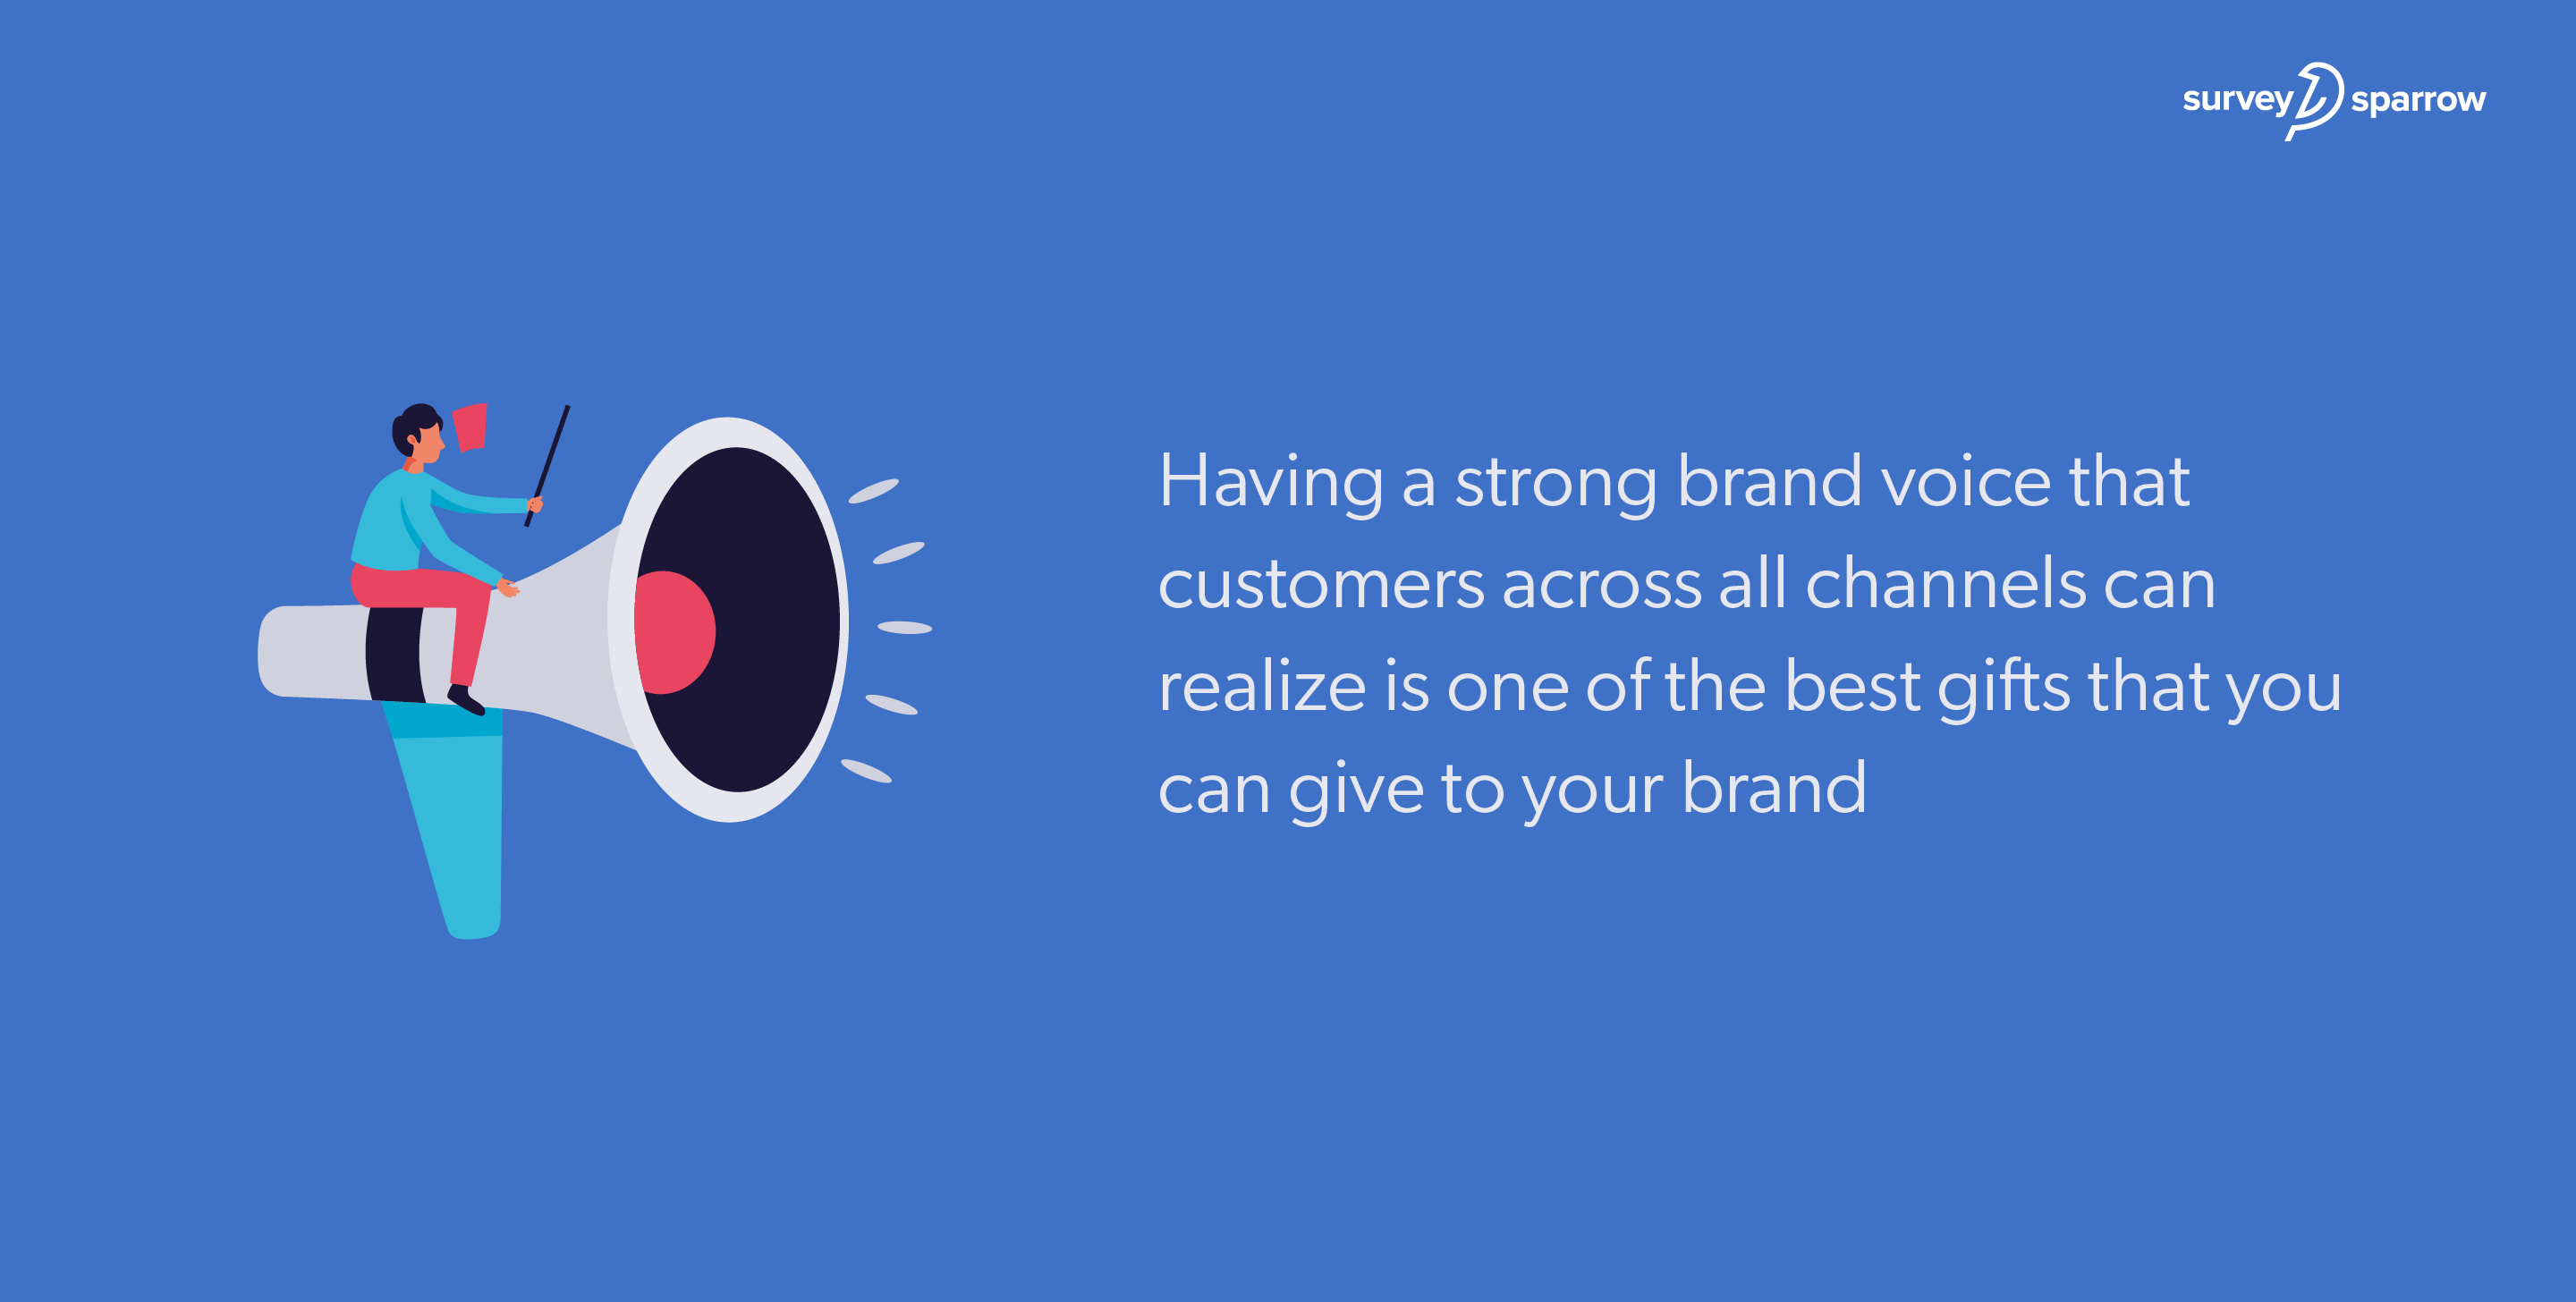 Having a strong brand voice that customers across all channels can realize is one of the best gifts that you can give to your brand.